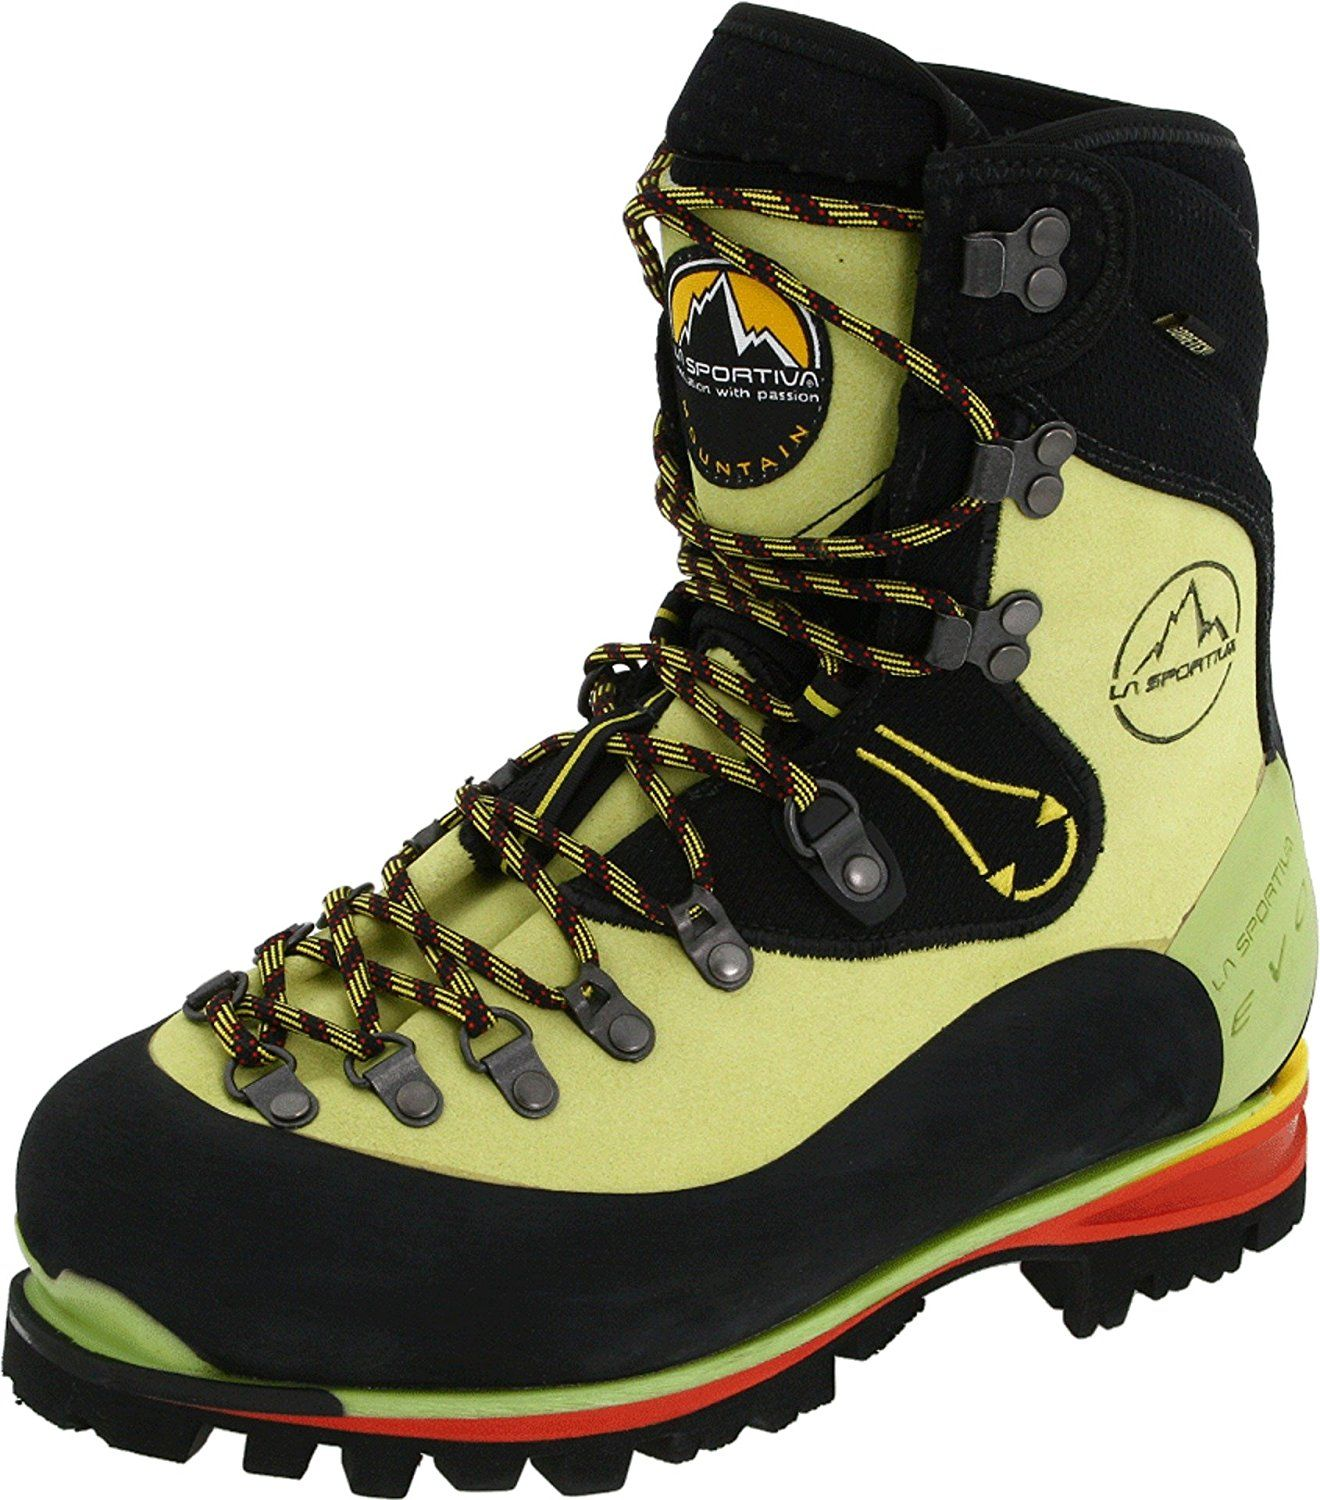 Mens Salewa Men's Vertical Pro Wide Mountaineering Boot Online Size 47